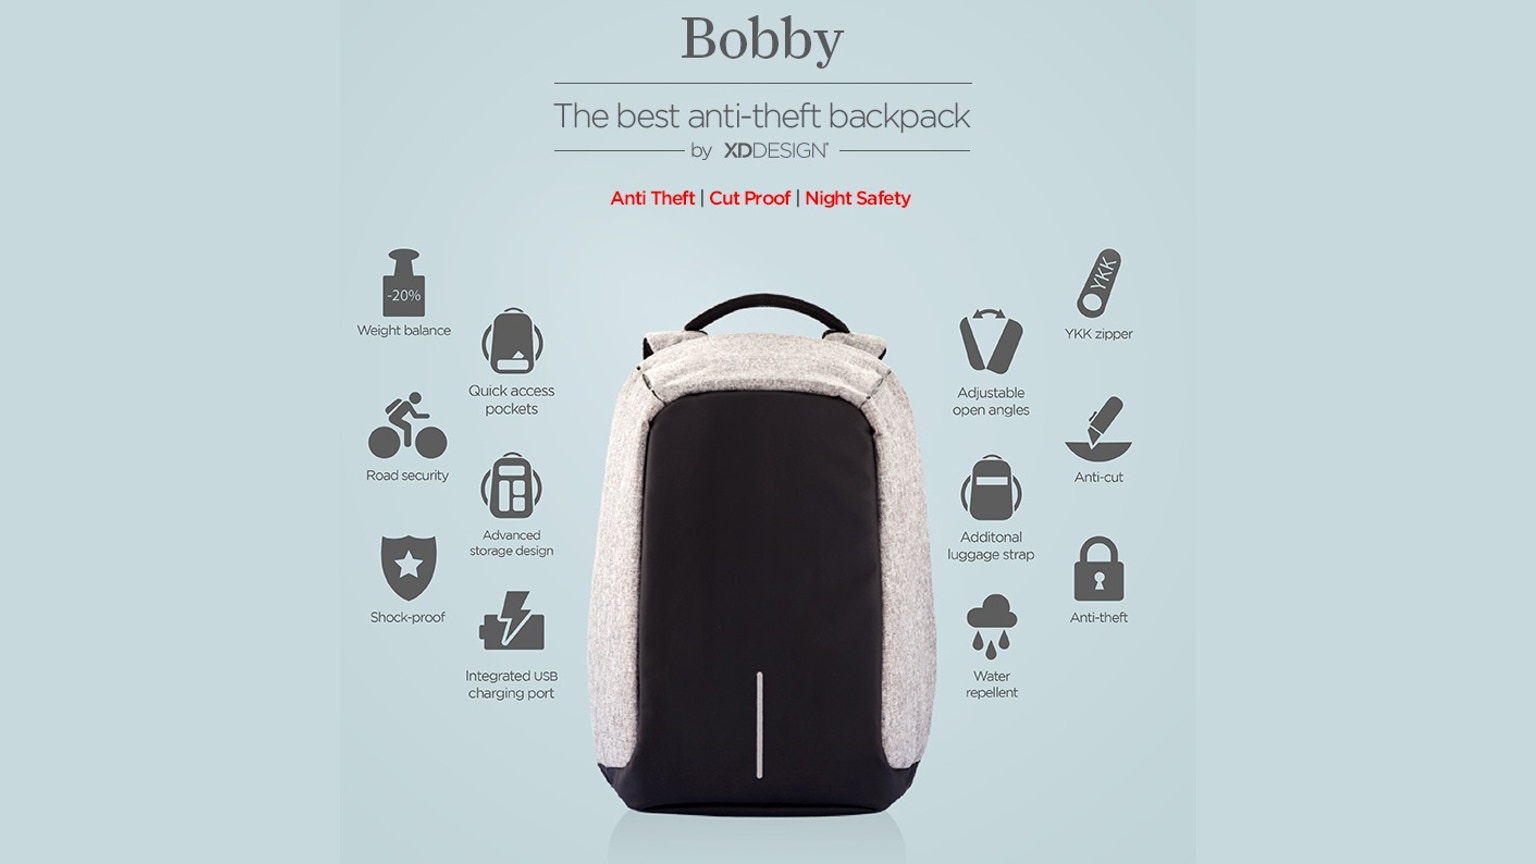 Art Grid Calendar : Bobby the best anti theft backpack by xd design